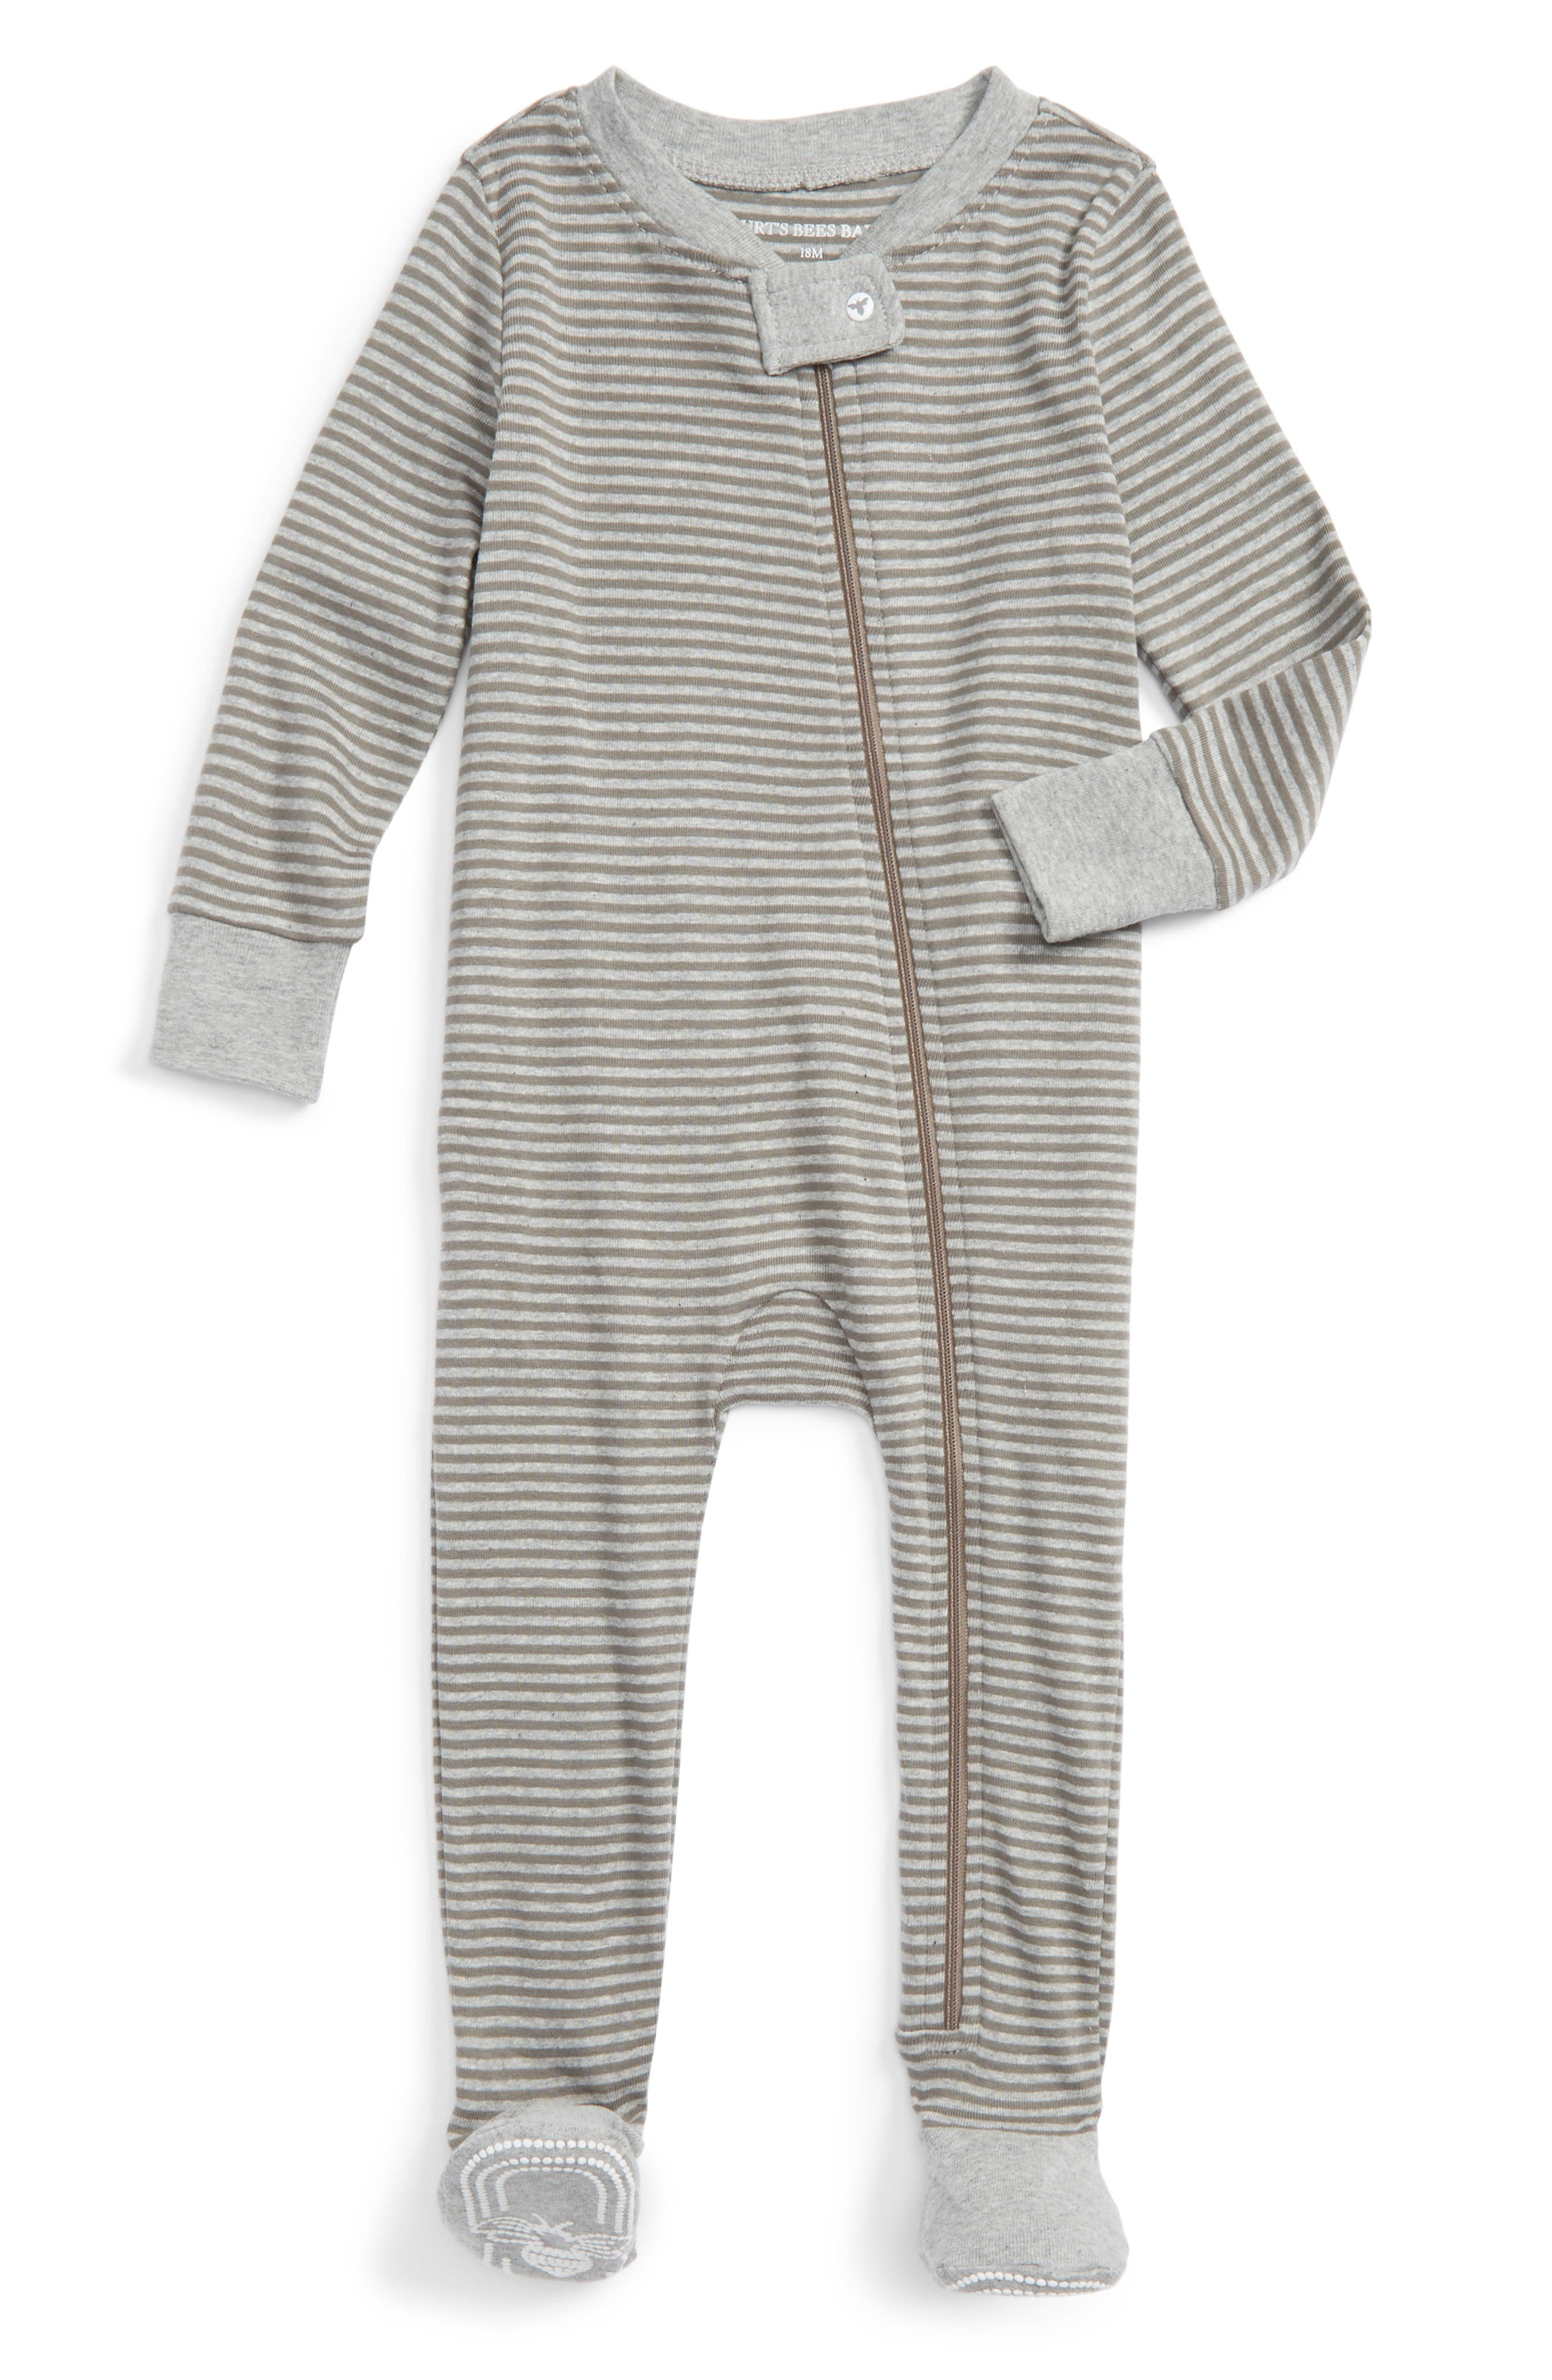 Burt's Bees Baby Organic Cotton One-Piece Pajamas (Baby)